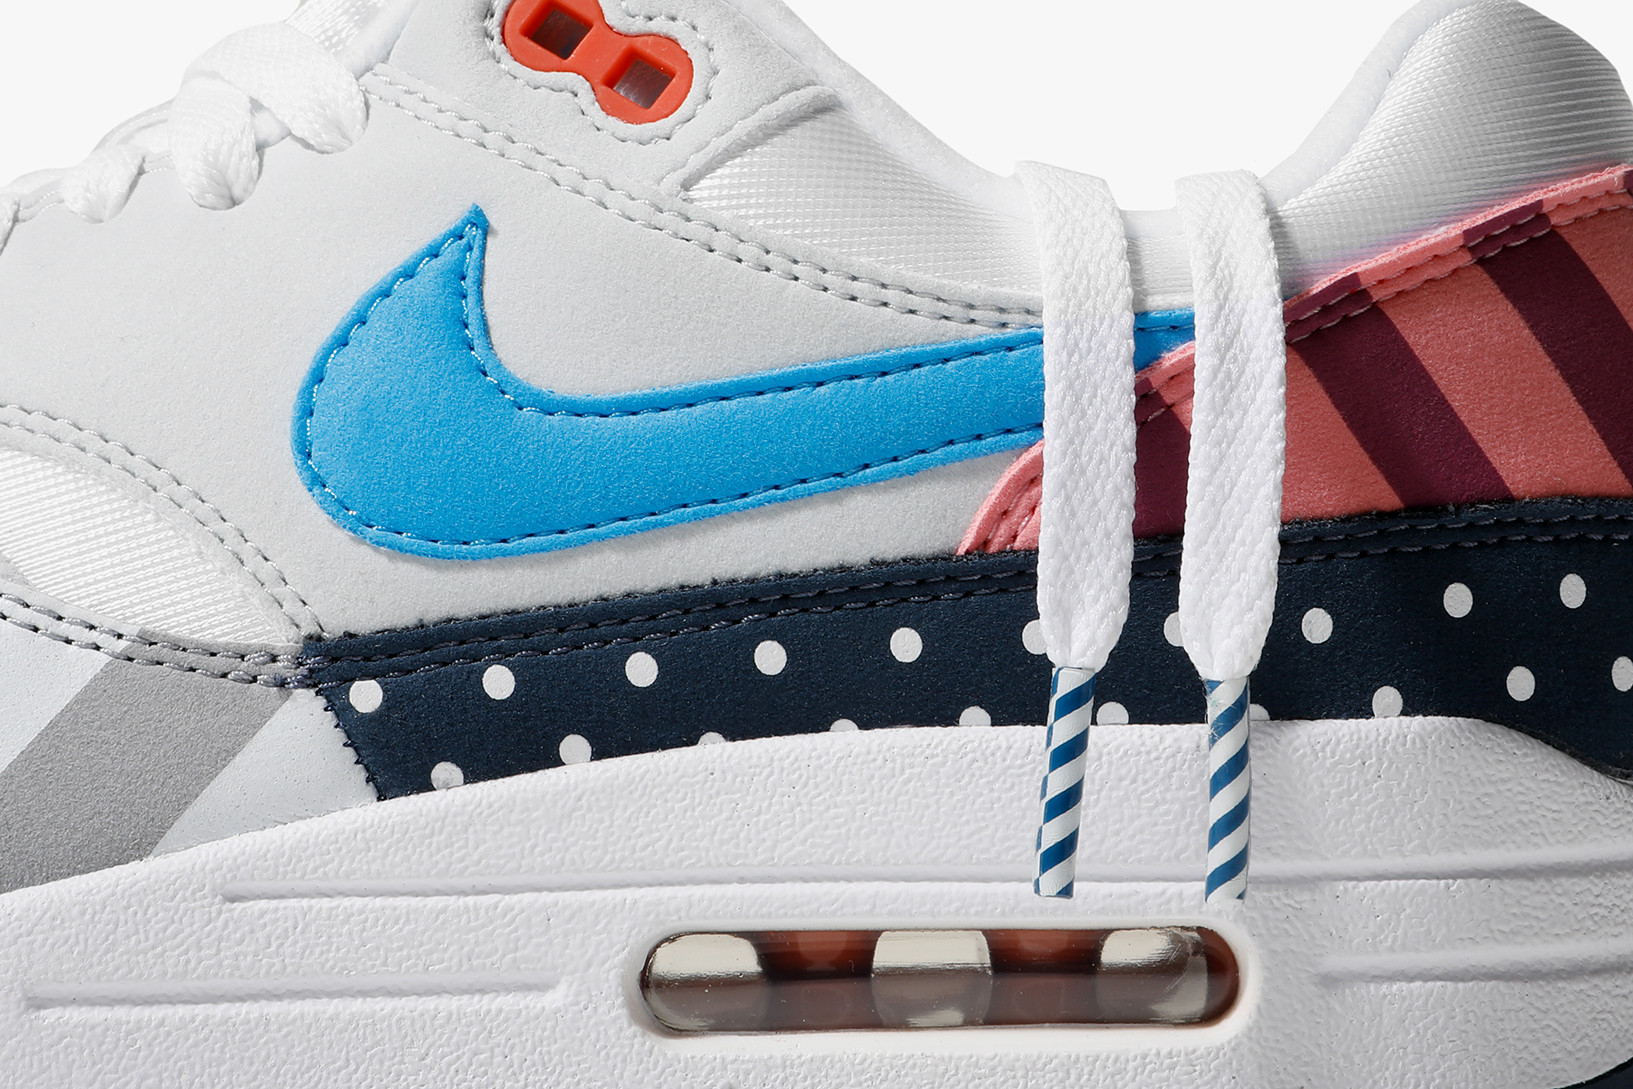 Múltiple Tratamiento Preferencial Bibliografía  Parra Join With Nike To Reveal A New Air Max 1 | Fashion News -  Conversations About Her